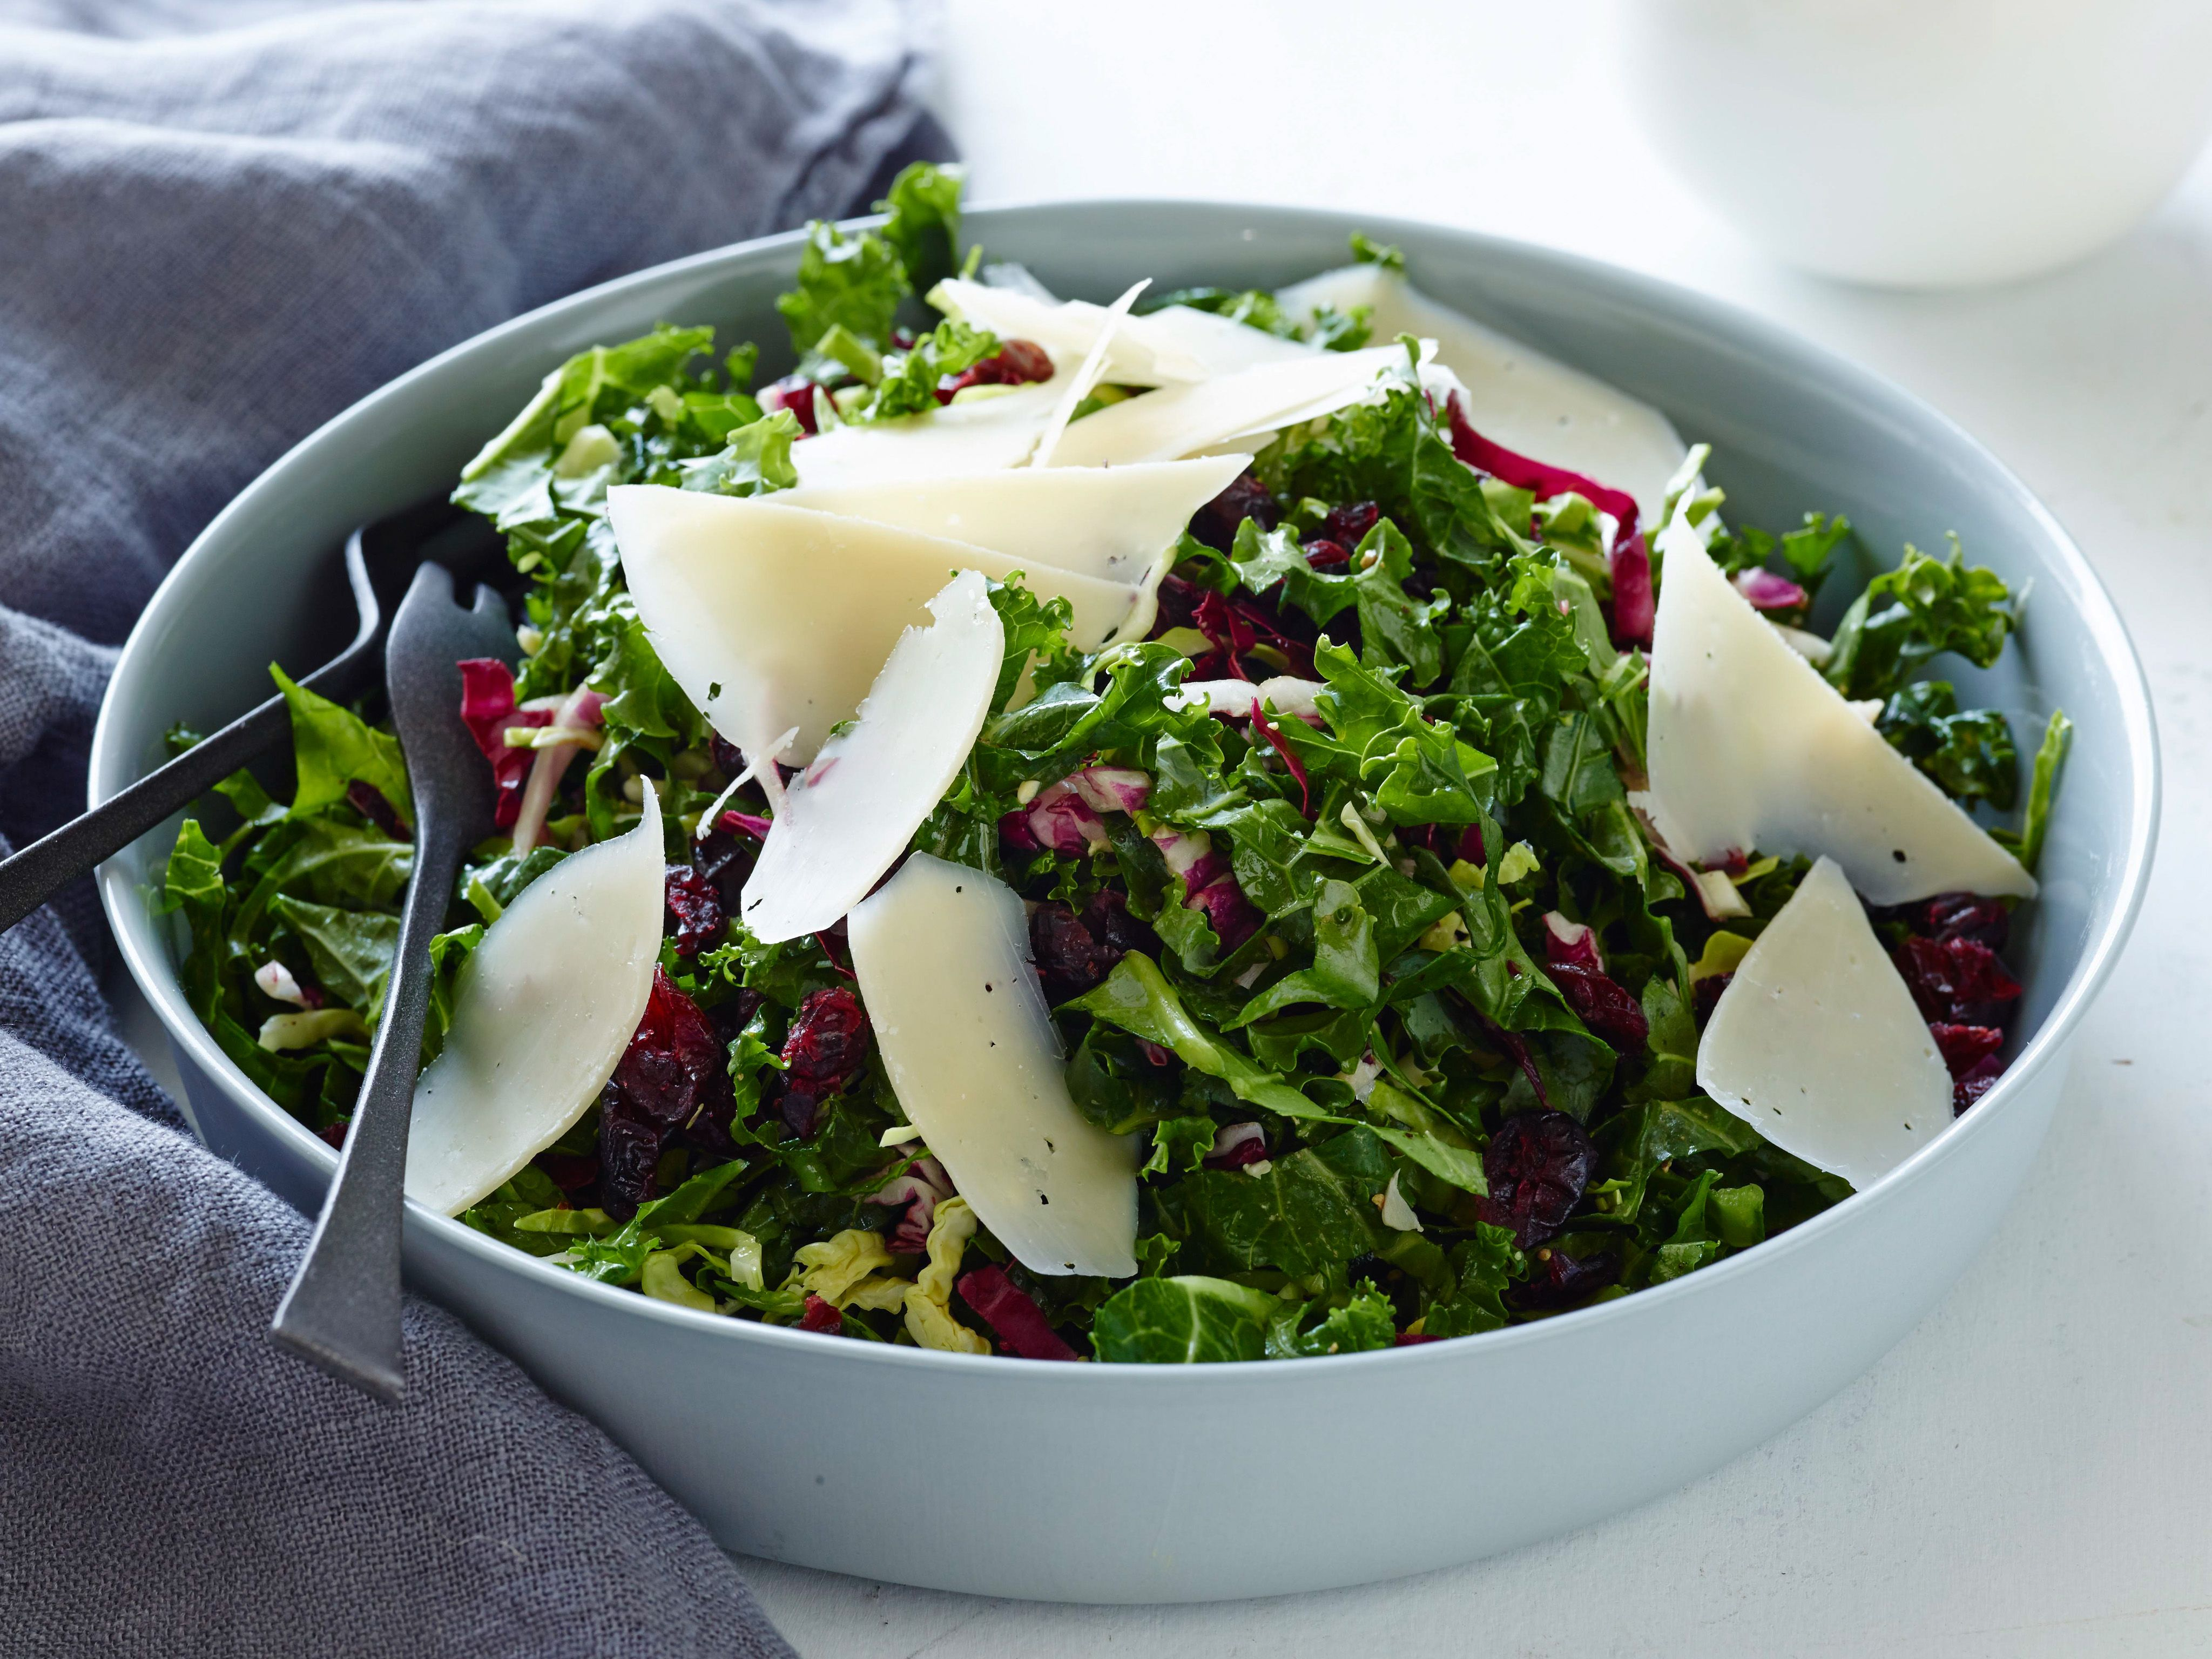 Barefoot Contessa Salad Recipes check out winter slaw. it's so easy to make! | barefoot contessa